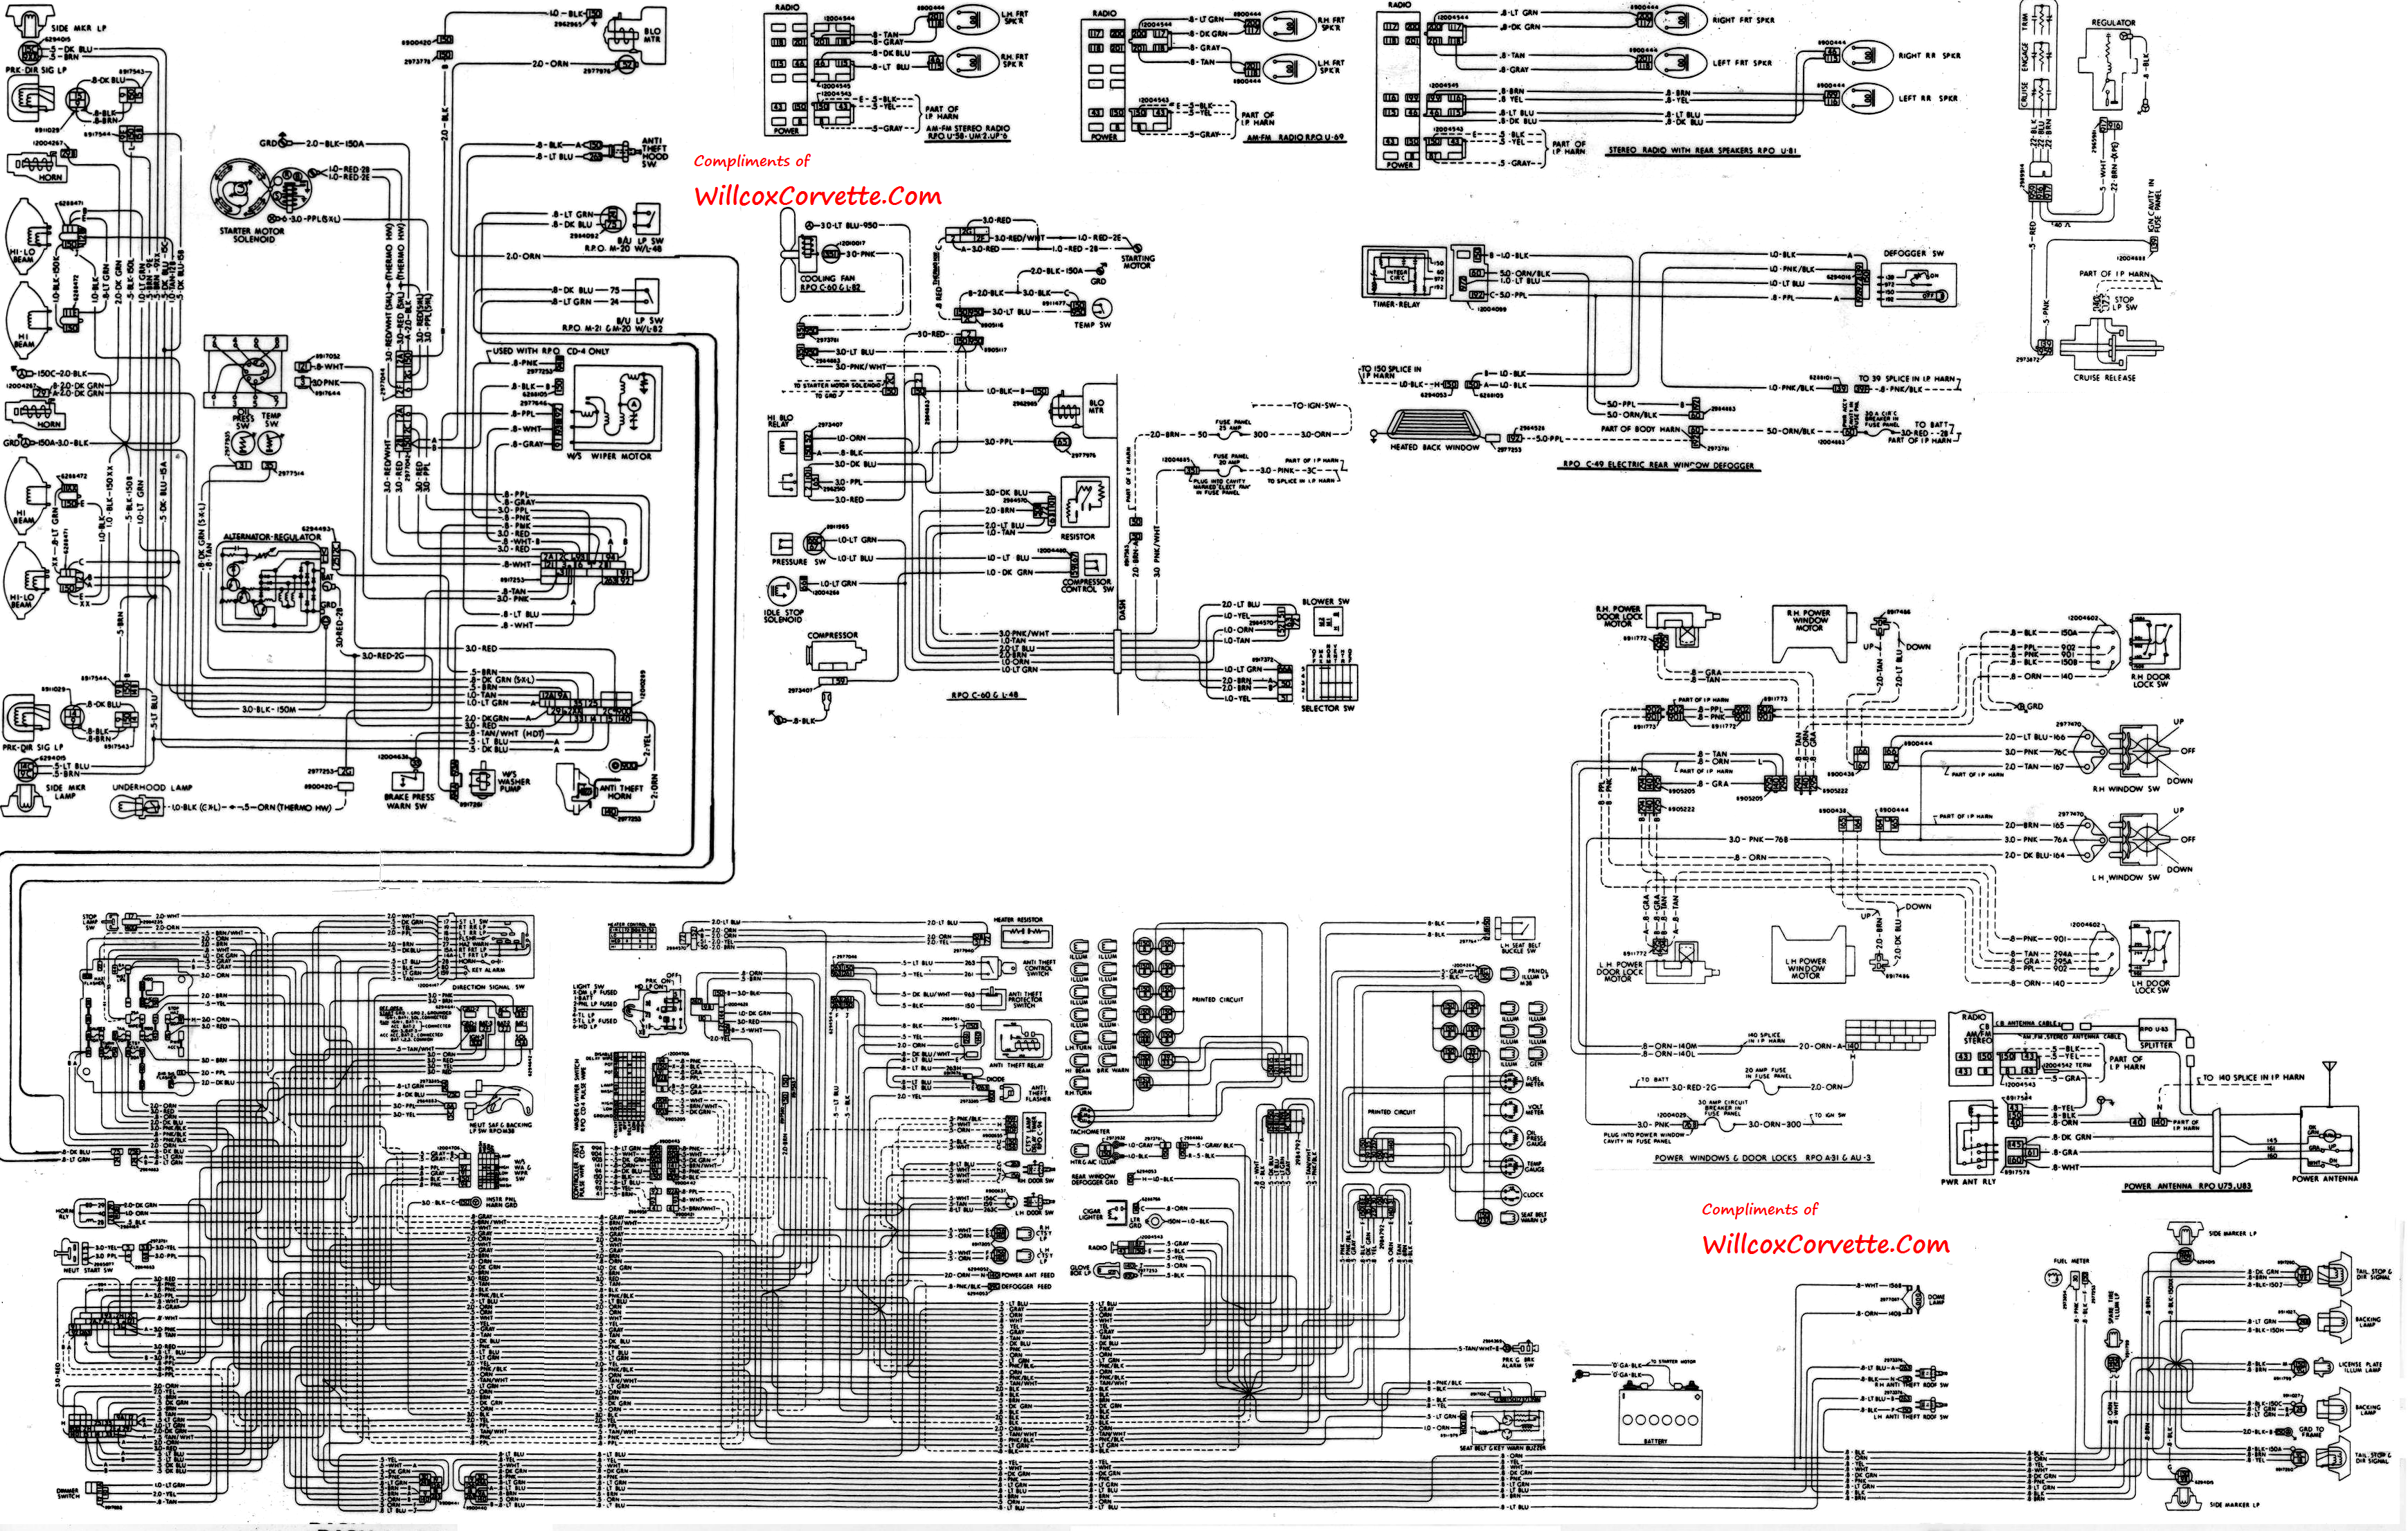 1979 wire diagram 1997 corvette wiring diagram c3 corvette wiring diagram 30 Amp RV Wiring Diagram at cos-gaming.co